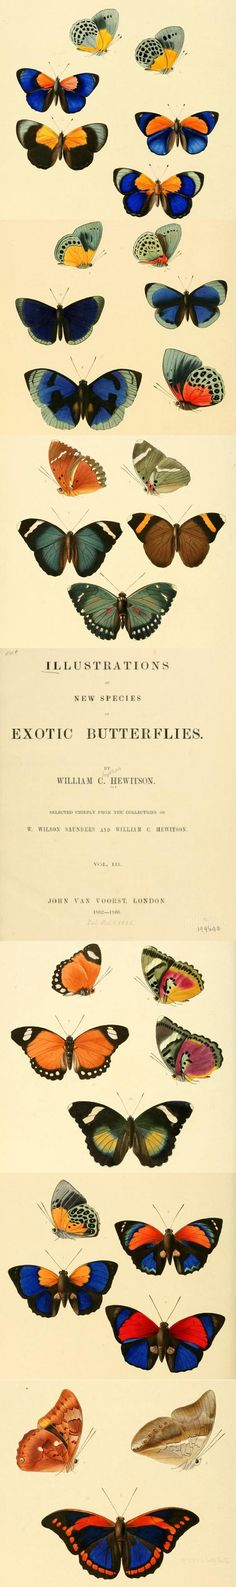 Click to read this #butterfly book from 1856. These butterflies are great inspiration for woodworking, craft, art and many other DIY projects!